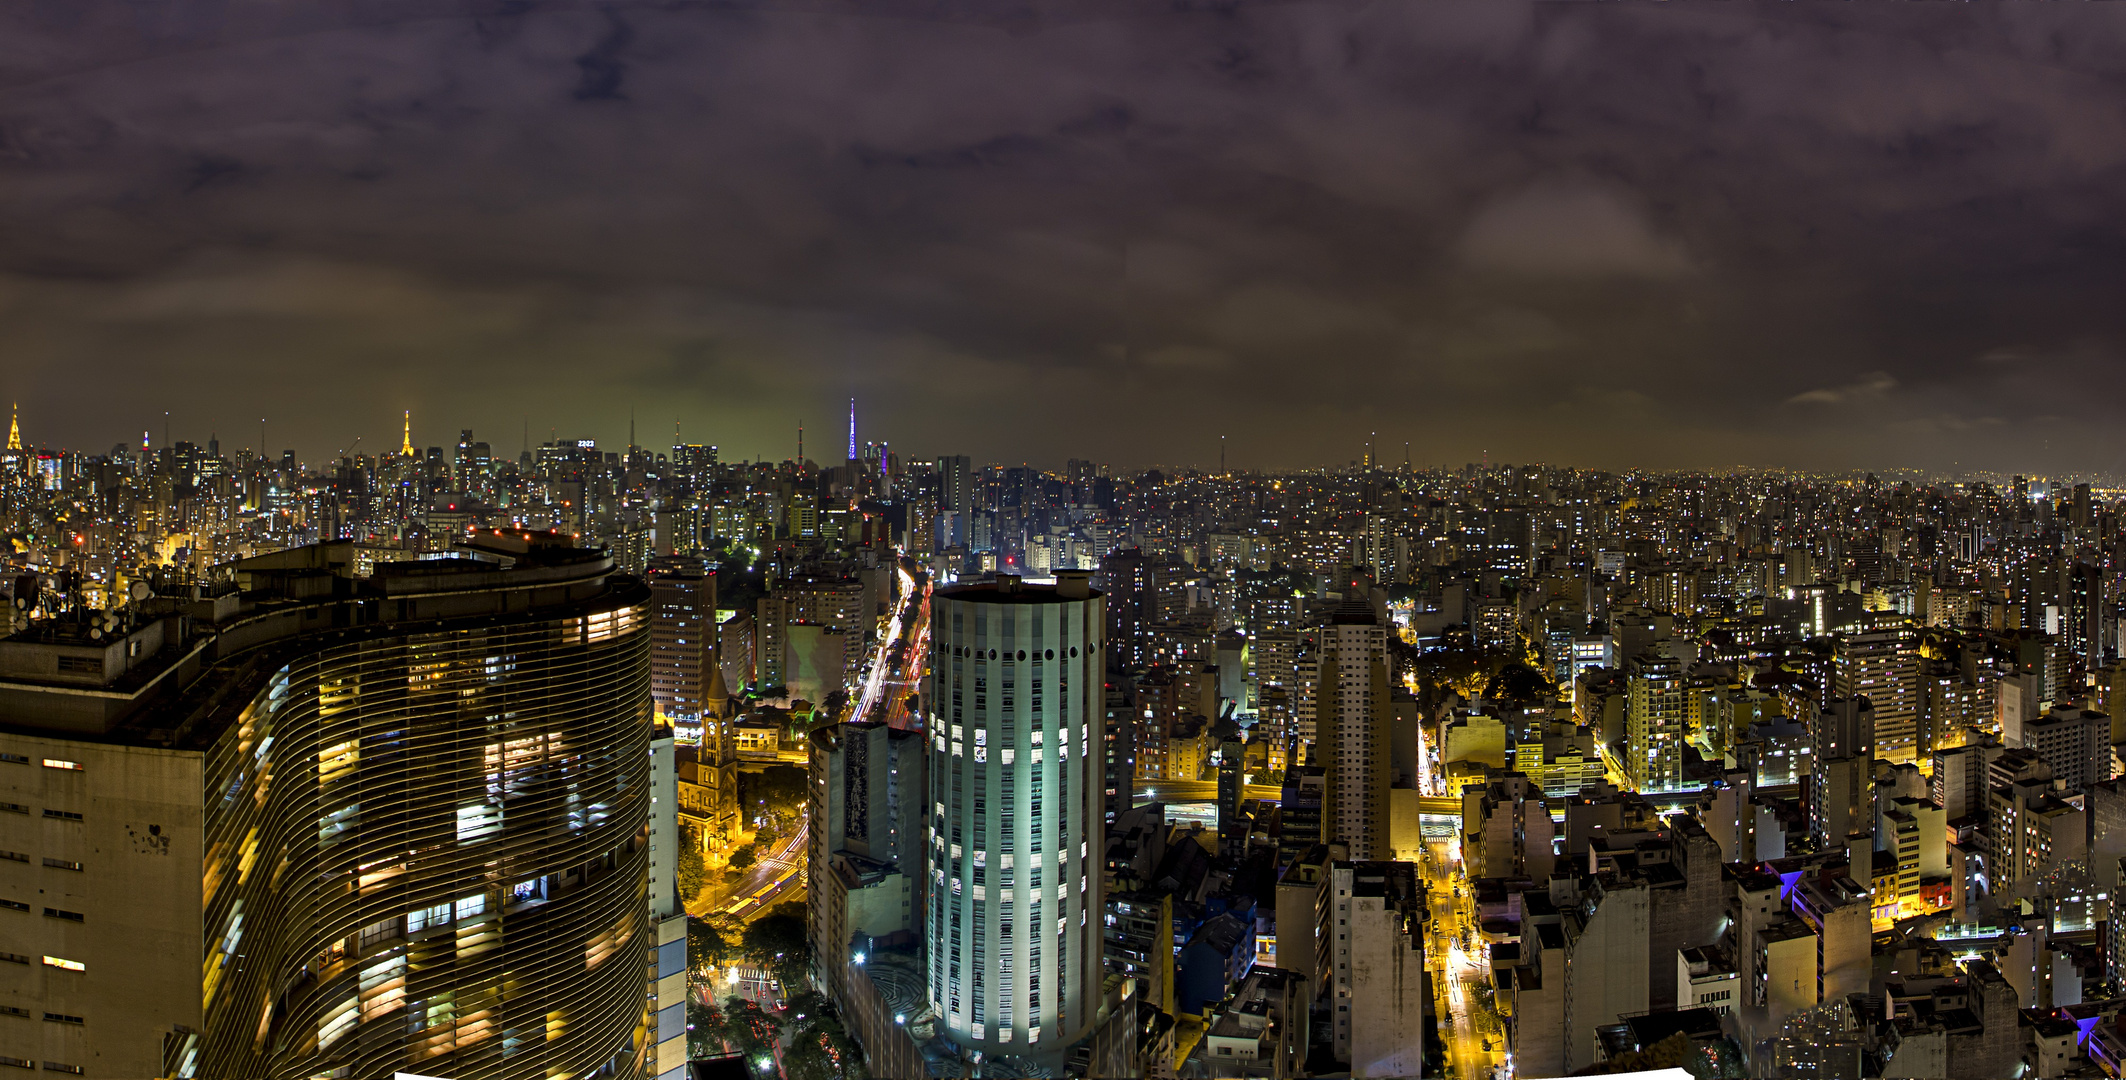 Sao Paolo at Night